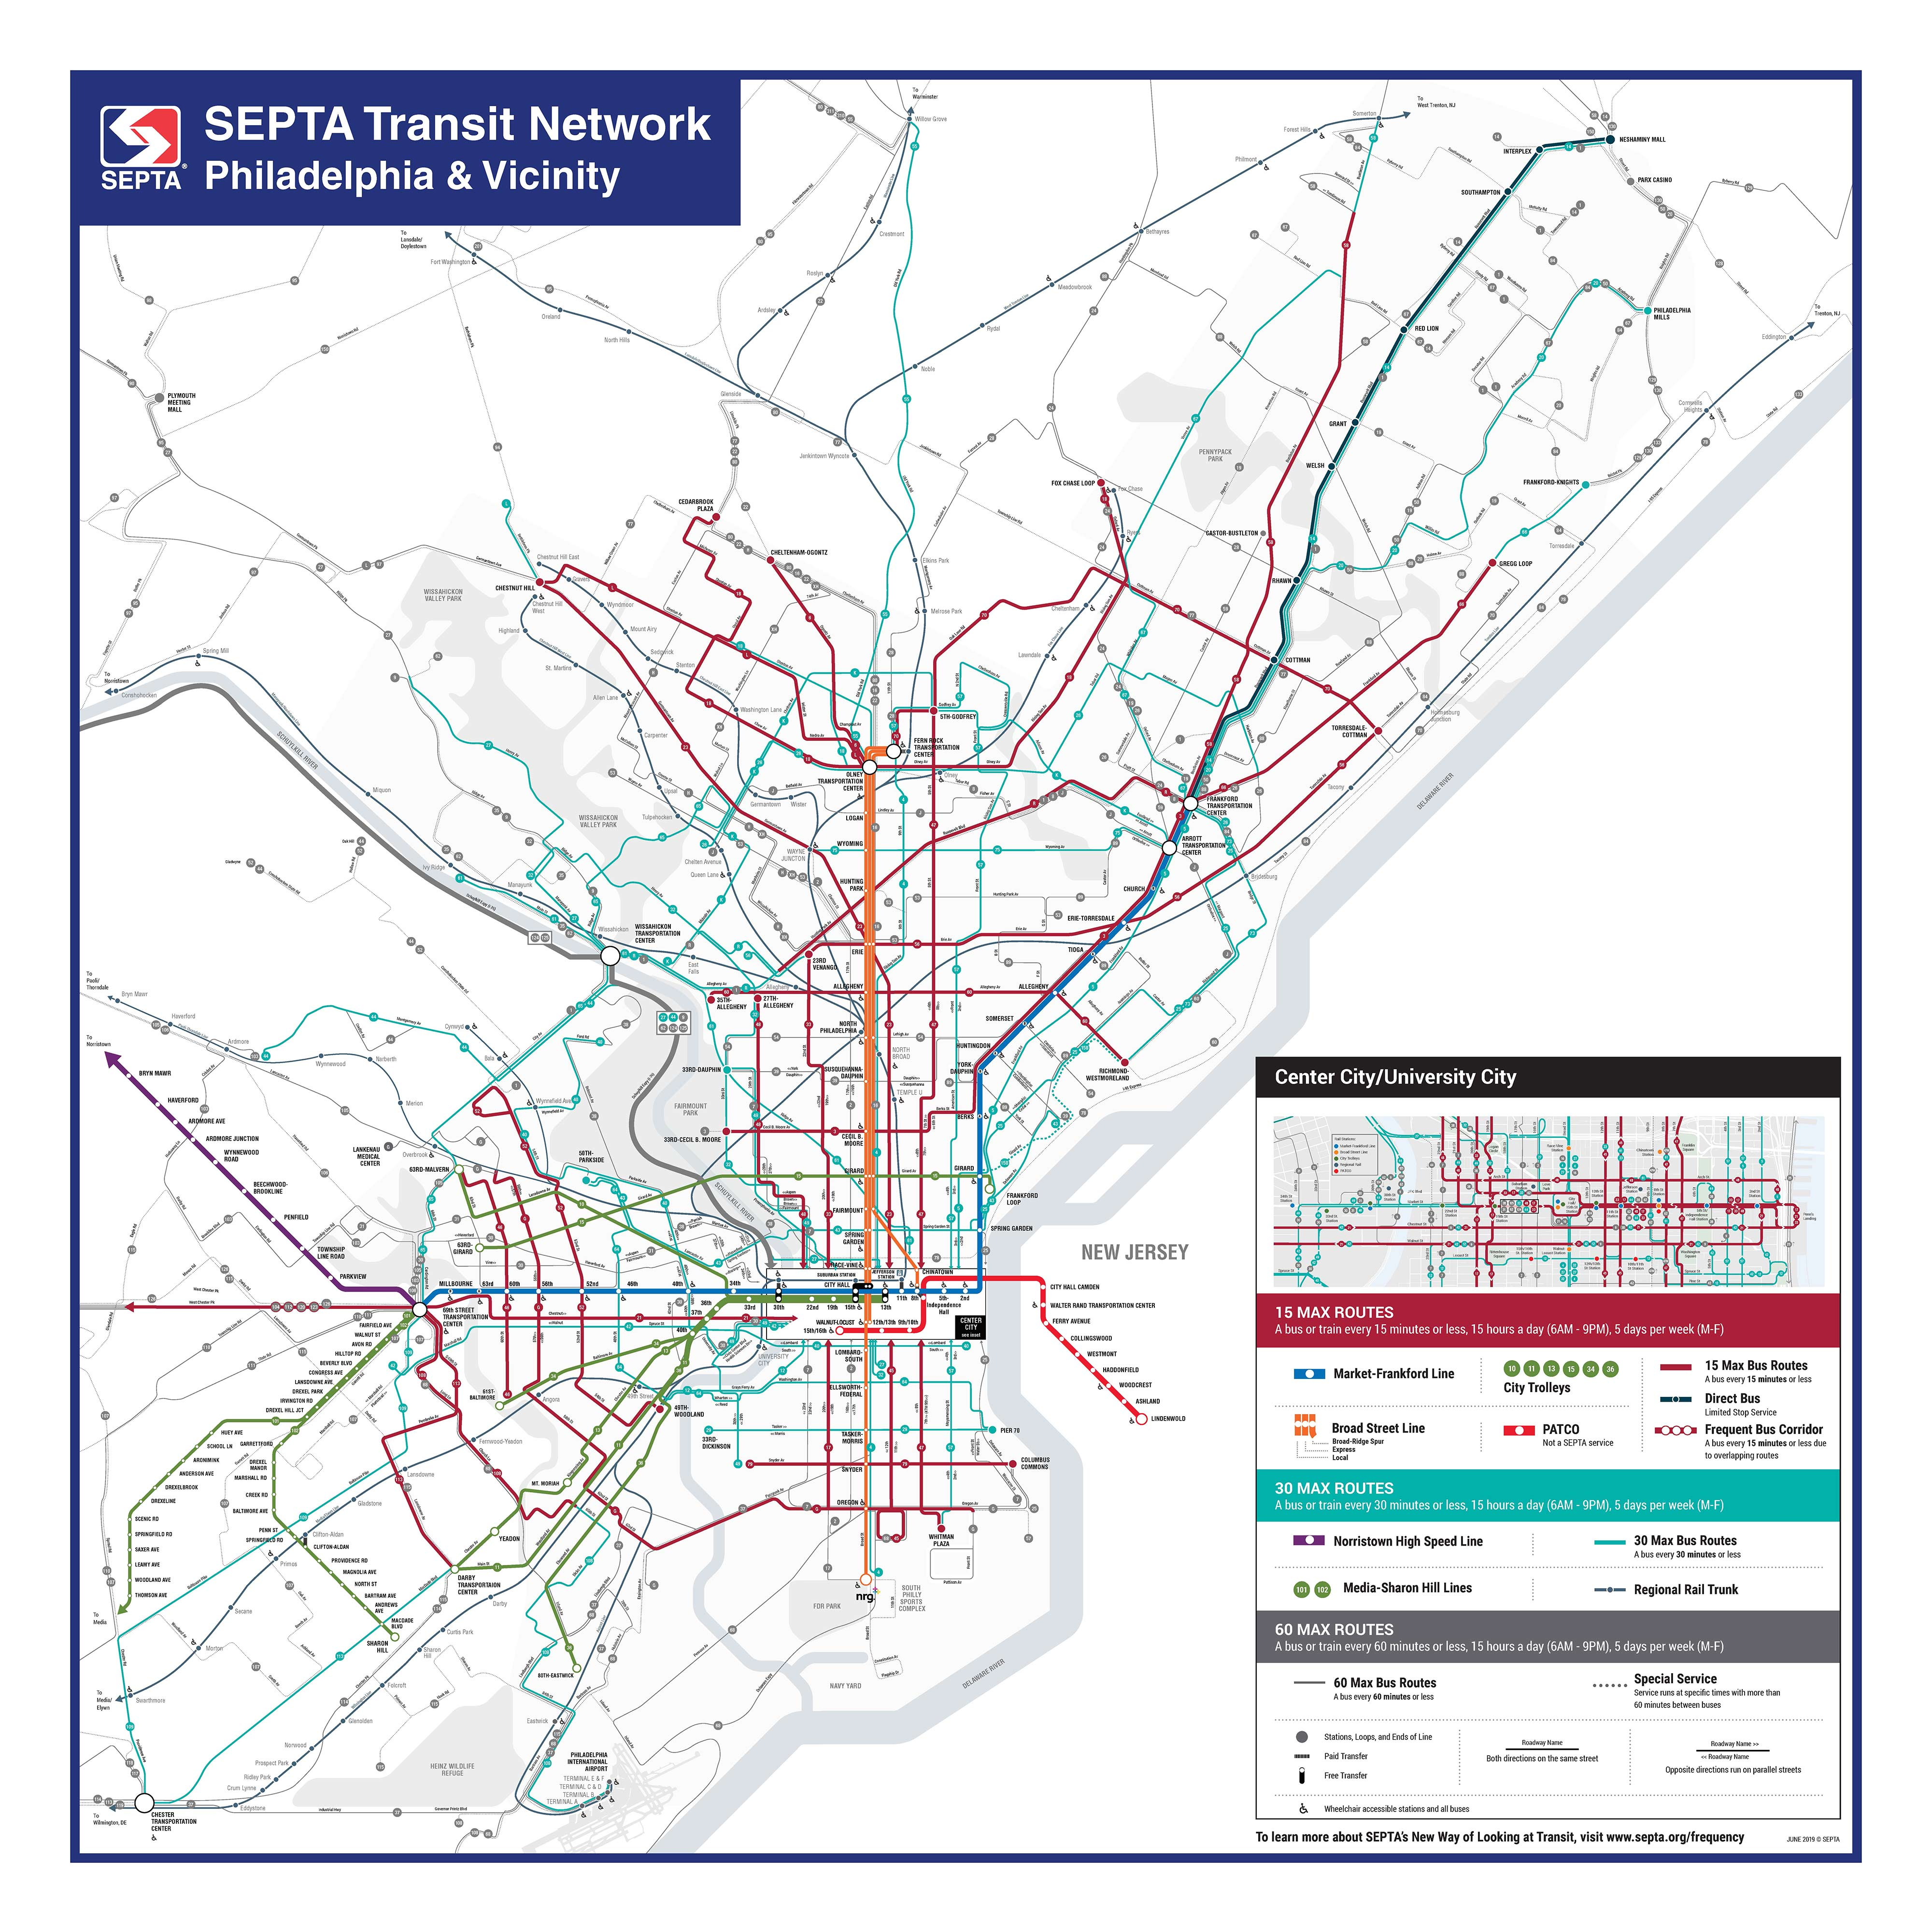 philadelphia train station map Septa Introduces New Transit Map That Includes Bus Routes philadelphia train station map